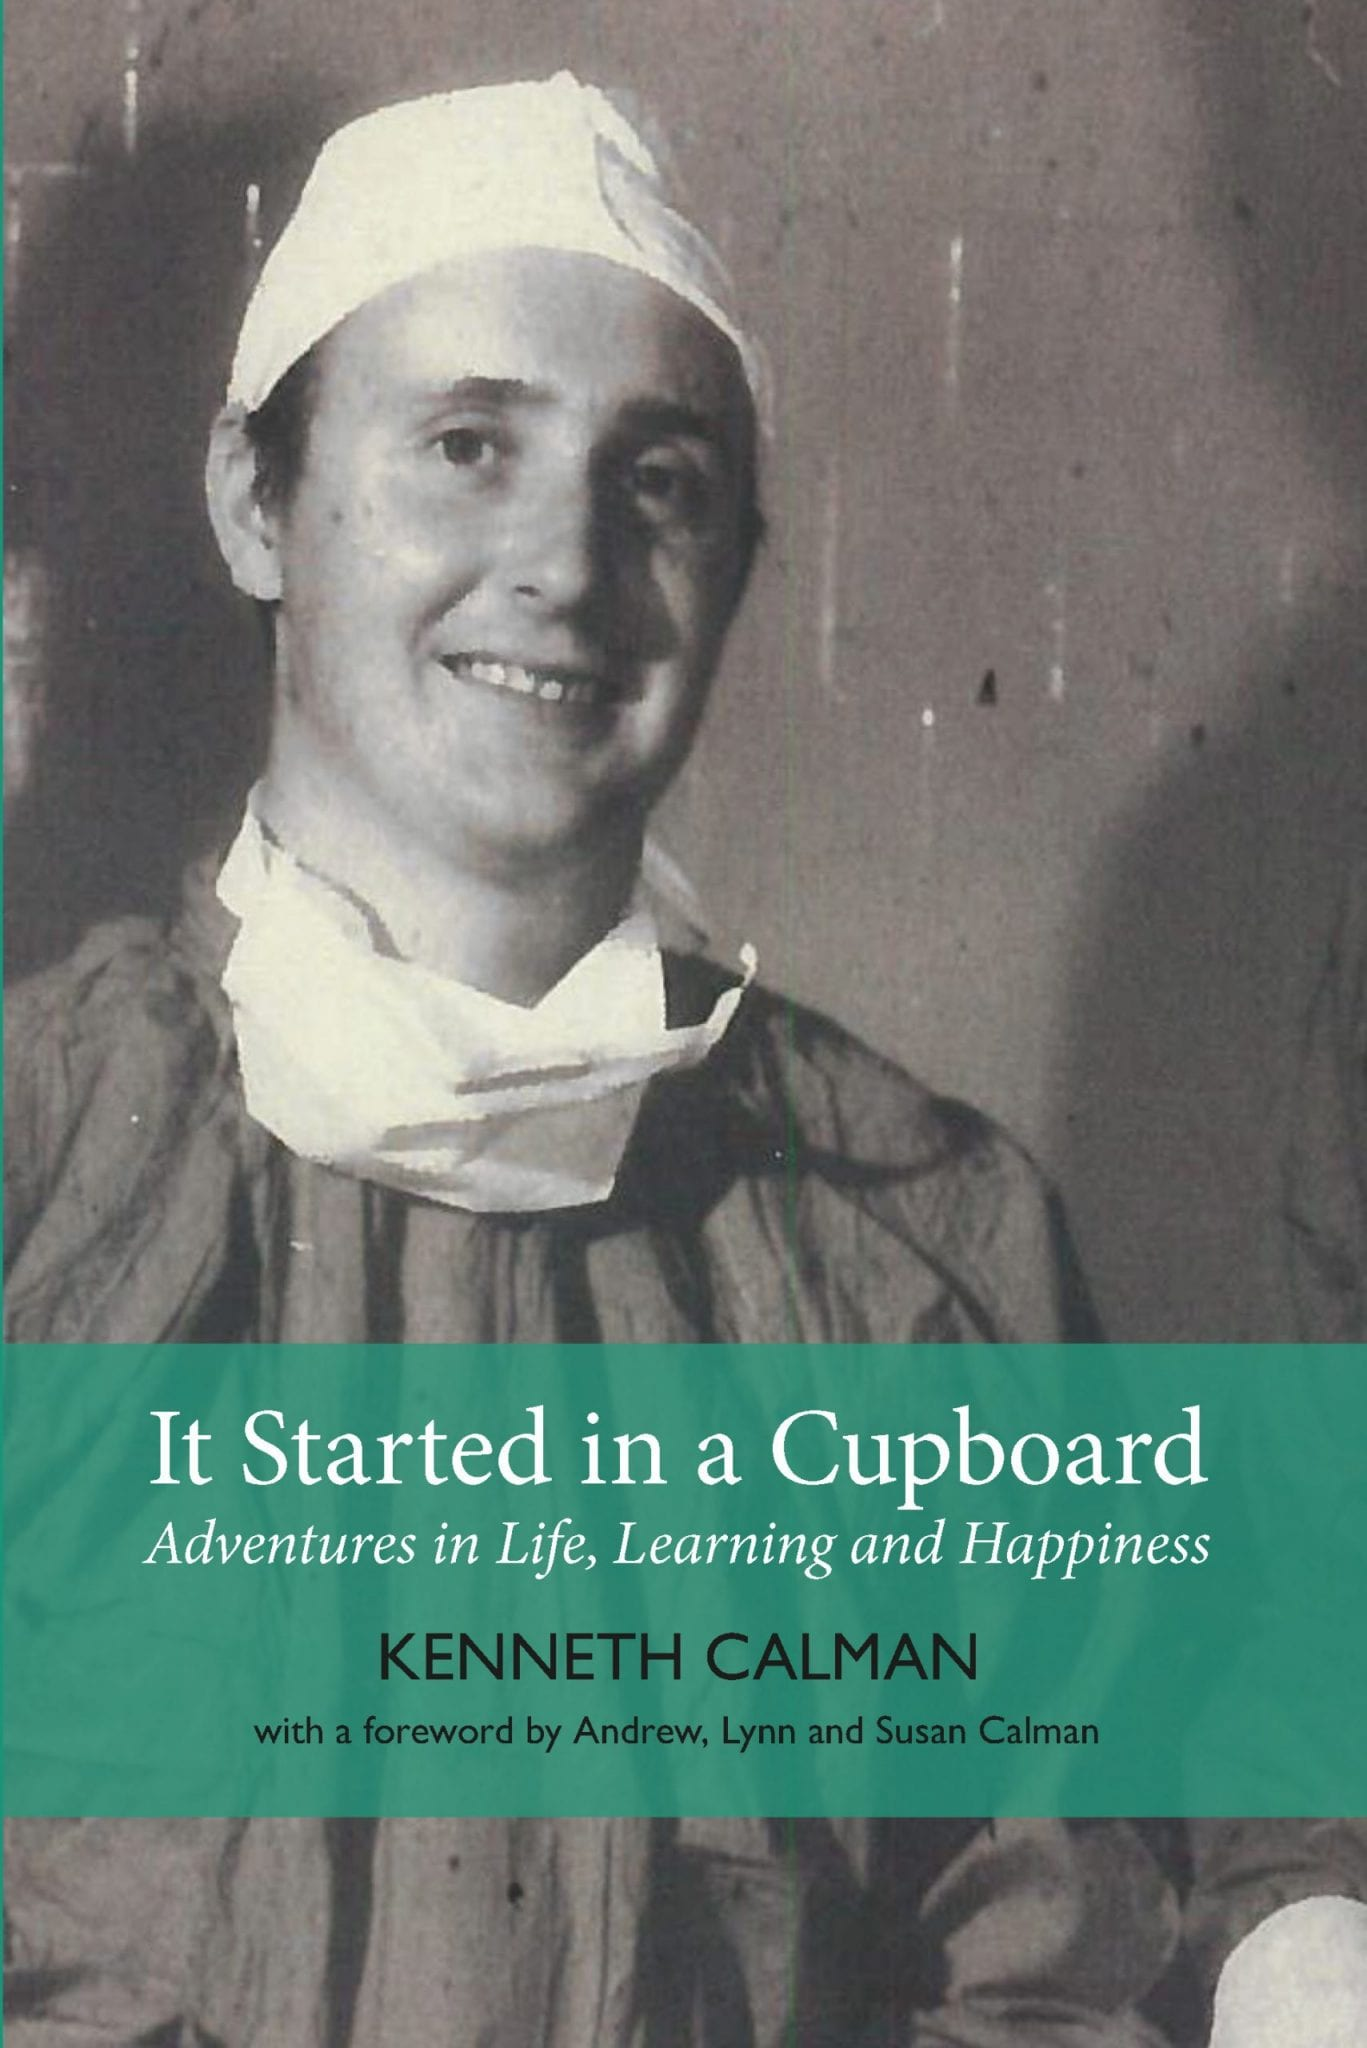 Our next free webinar: In conversation with Sir Kenneth Calman